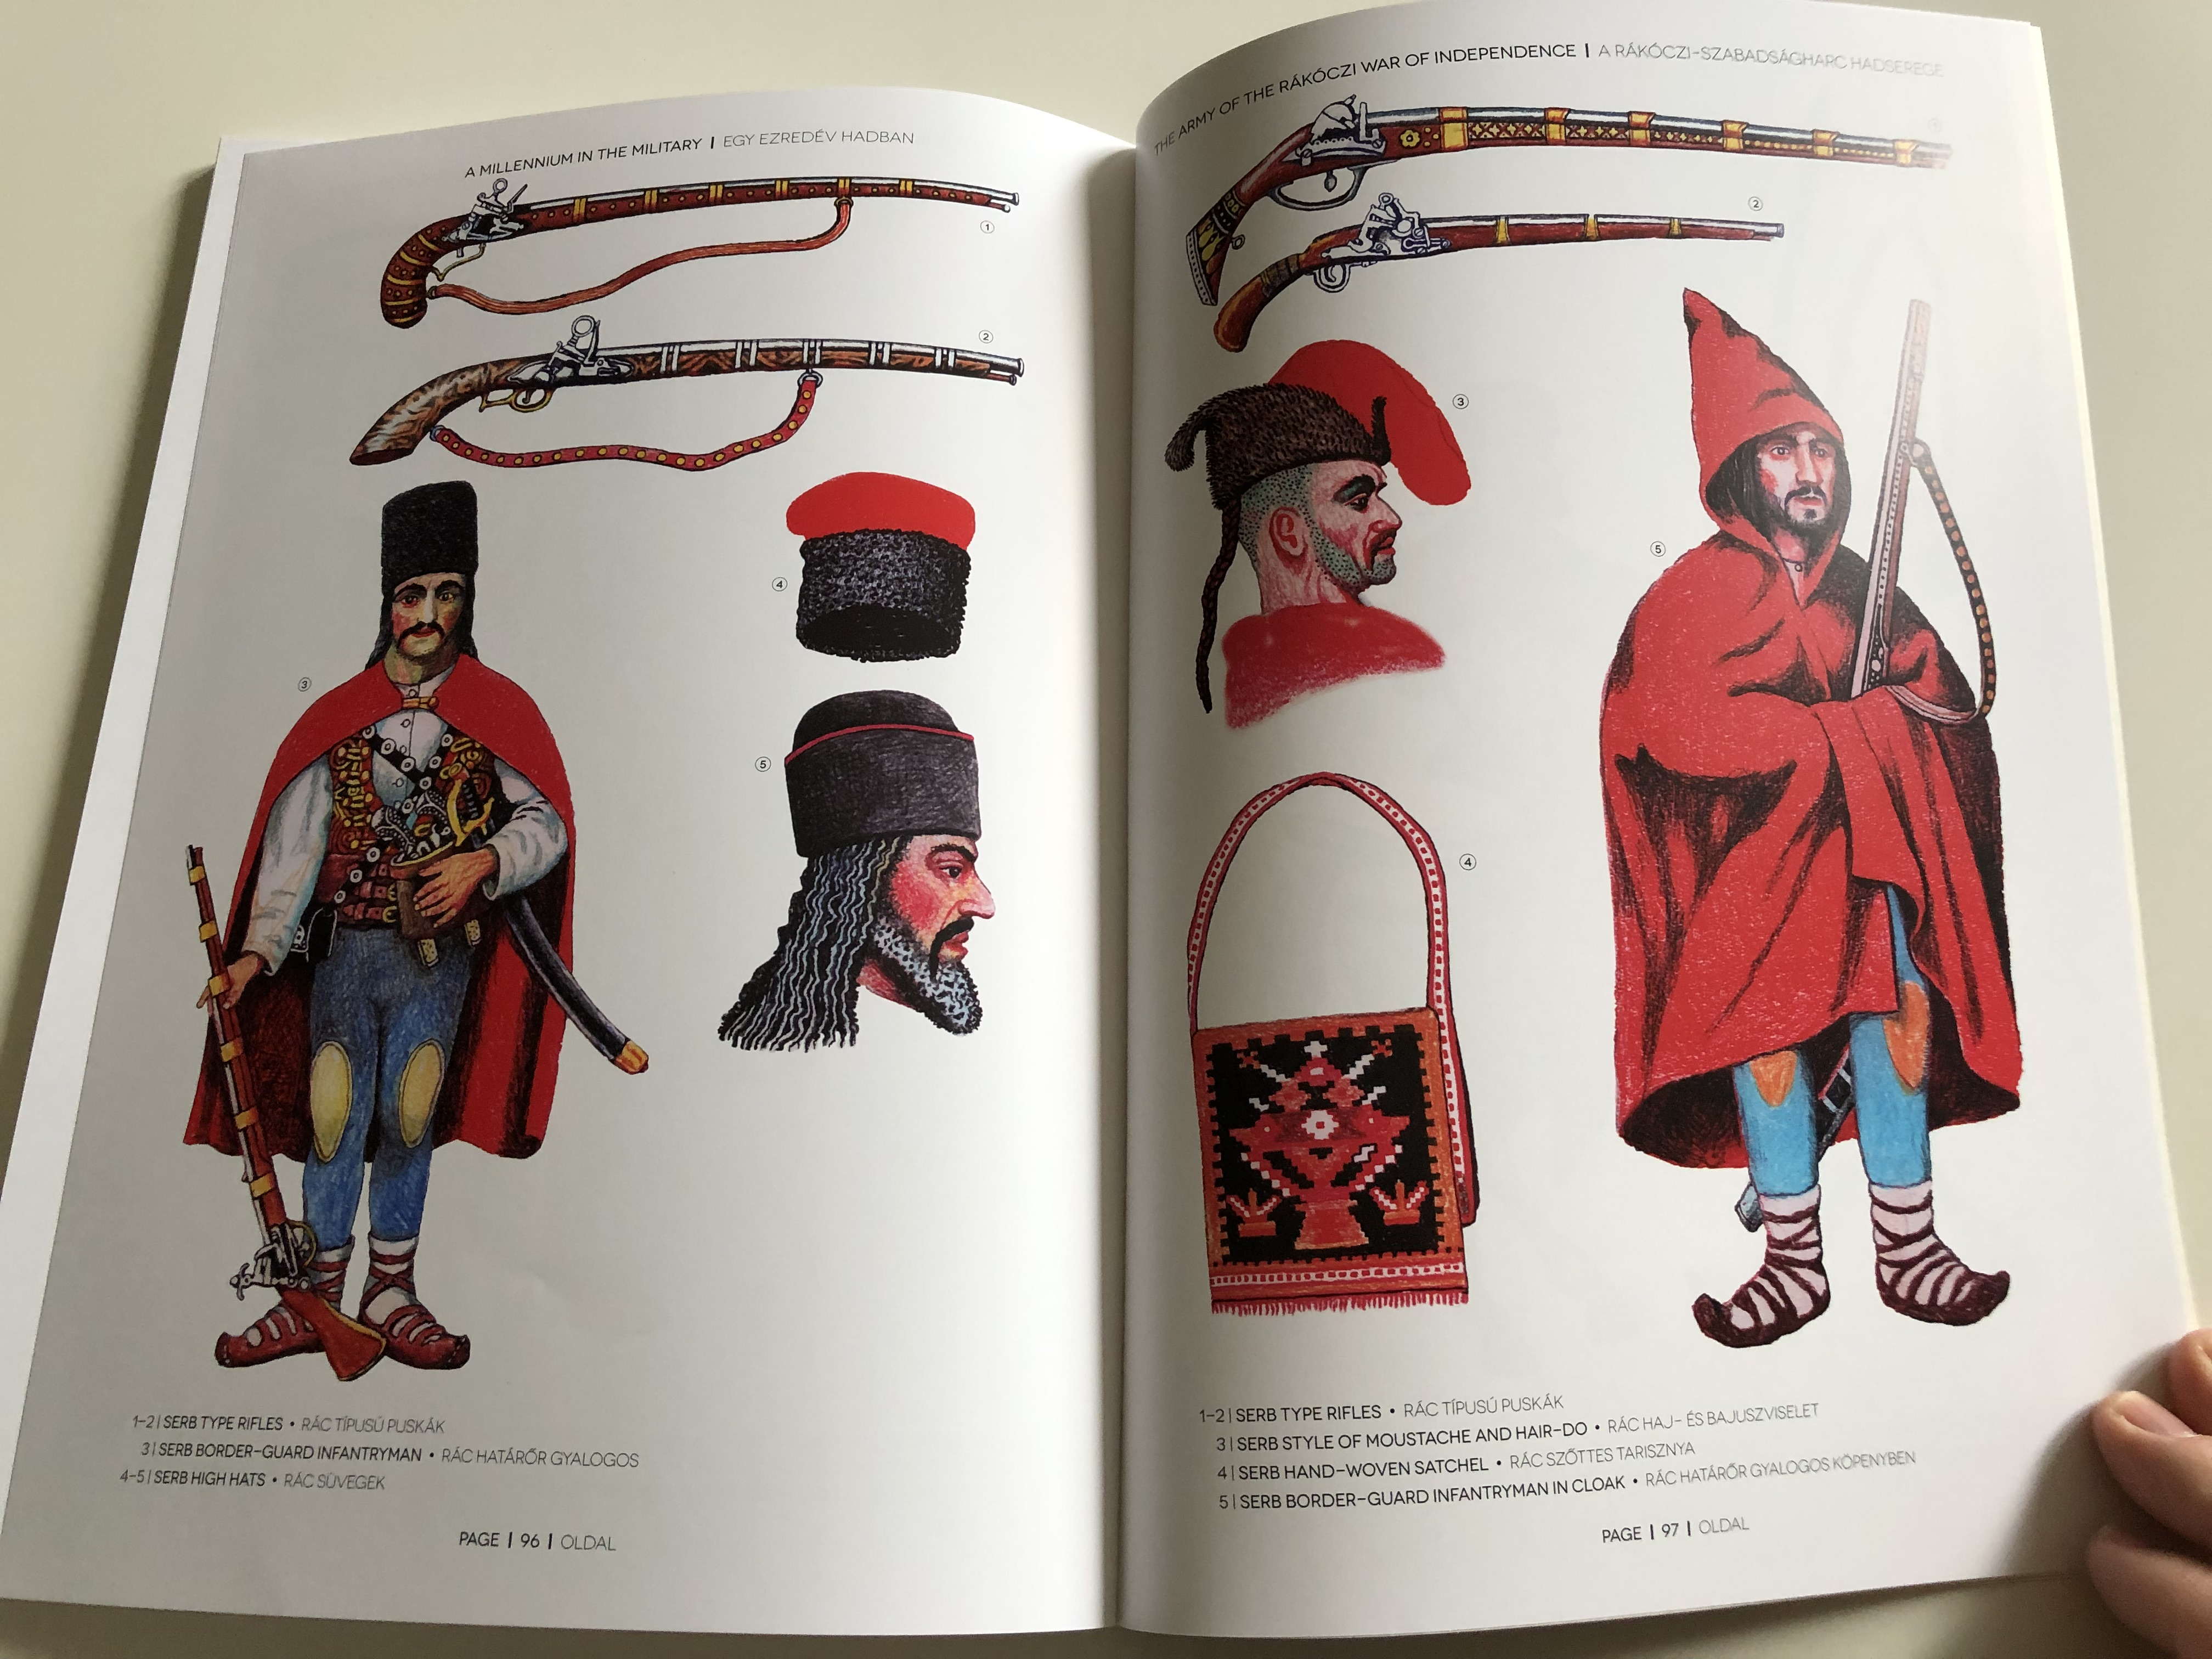 the-army-of-the-r-k-czi-war-of-independence-1703-1711-by-gy-z-somogyi-a-r-k-czi-szabads-gharc-hadserege-1703-1711-a-millennium-in-the-military-egy-ezred-v-hadban-paperback-2018-hm-zr-nyi-12-.jpg